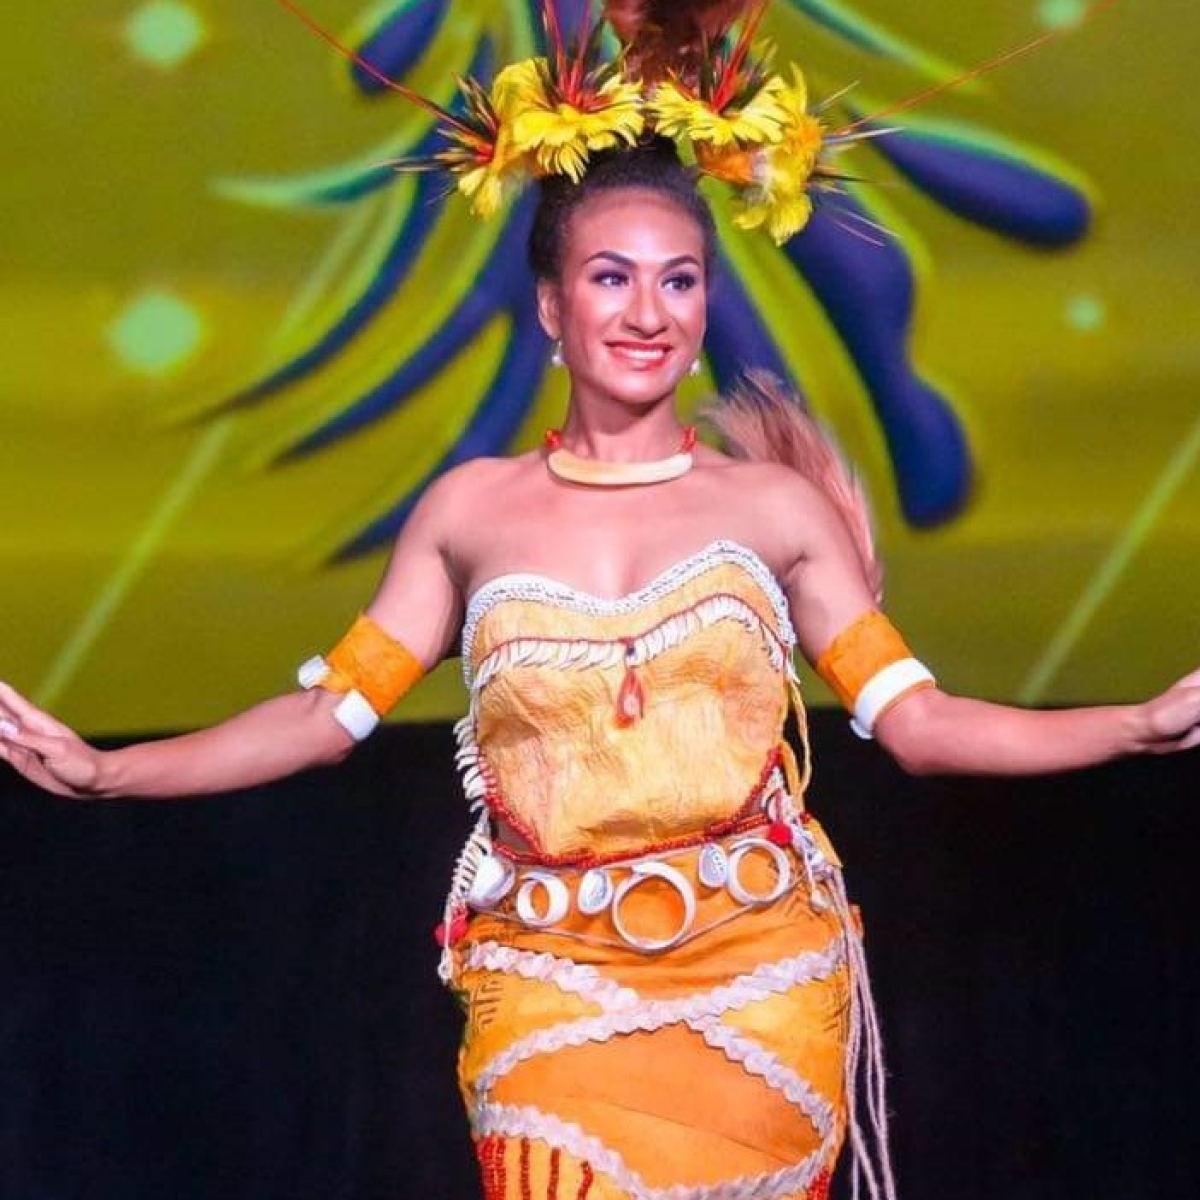 Miss Papua New Guinea loses crown after TikTok twerking video goes viral; Twitter outraged